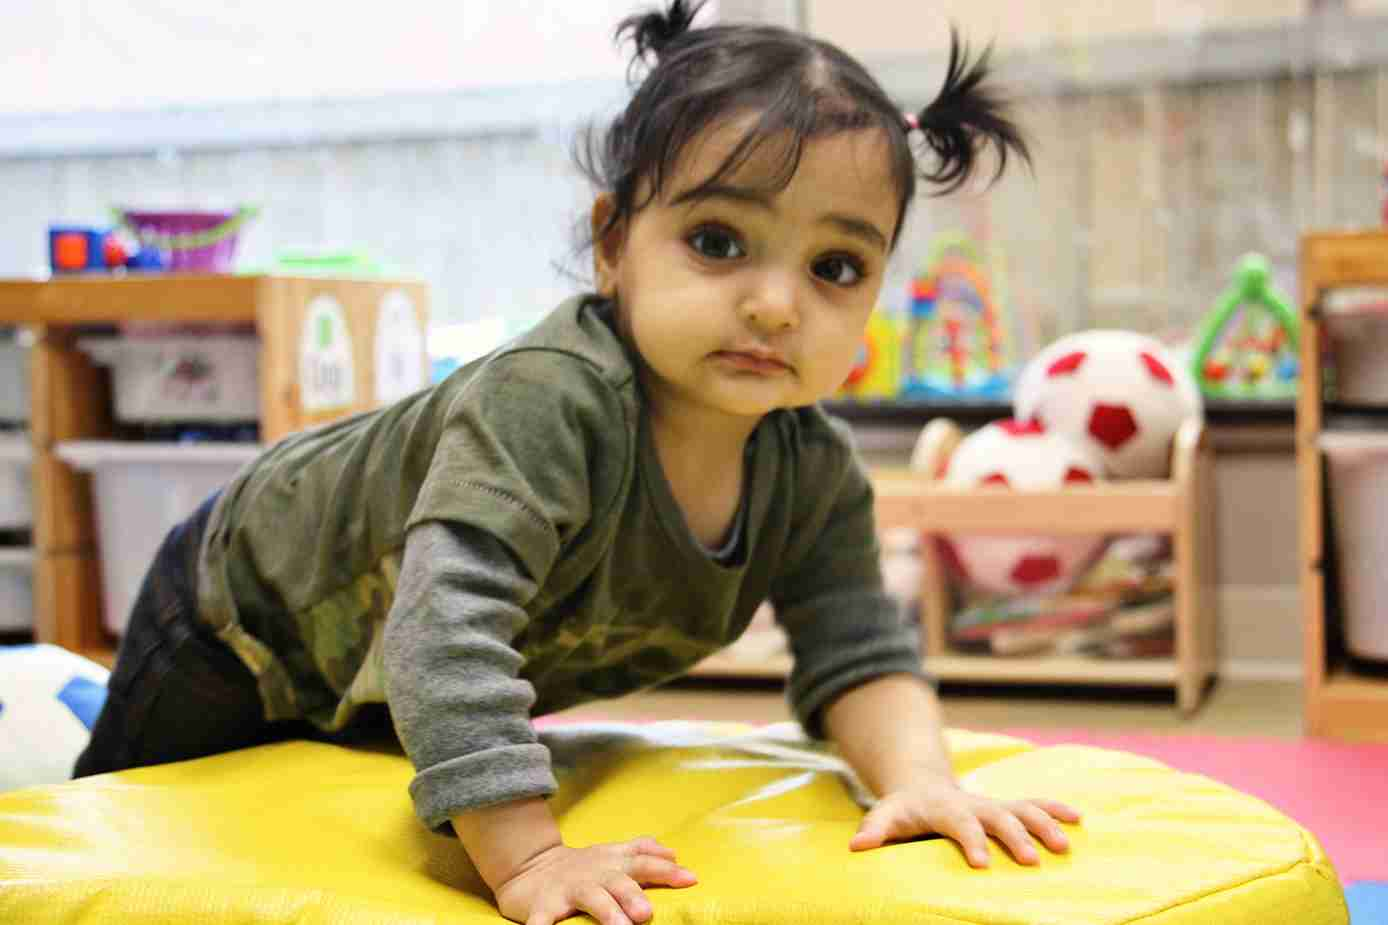 Baby leaning forward on a yellow mat